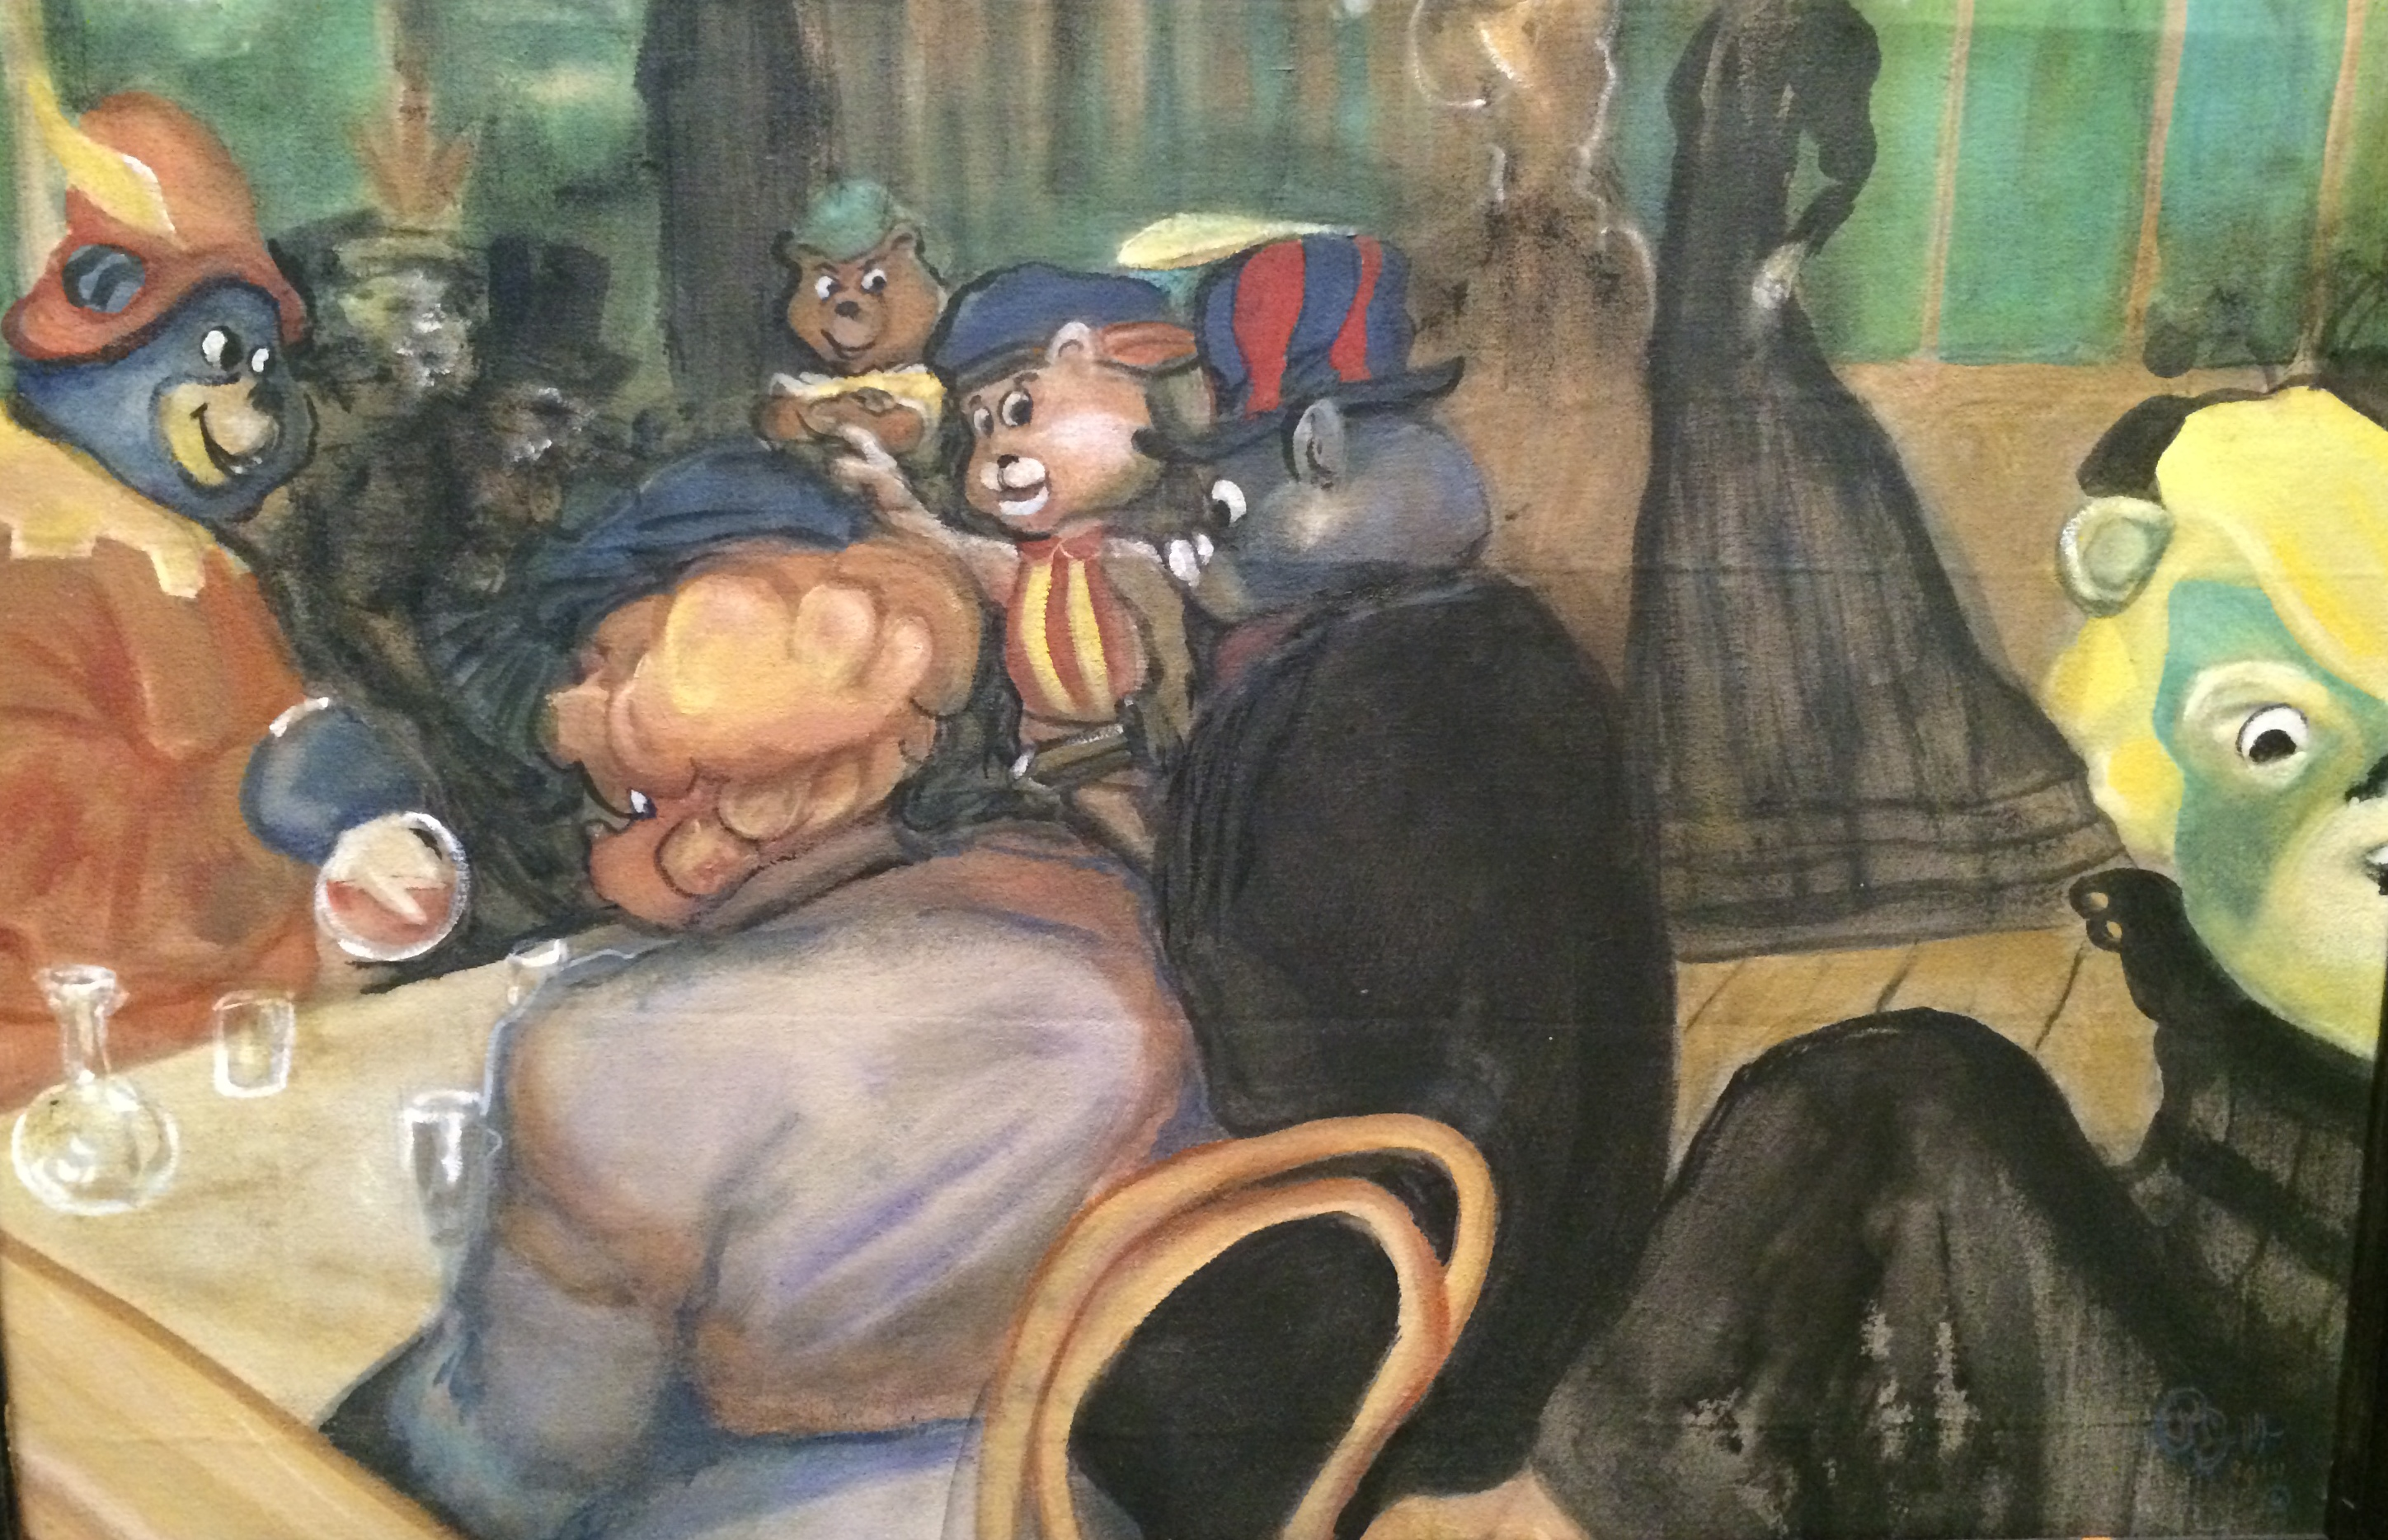 BEAR NECESSITIES...a take on the work of Lautrec with Toulouse la Gummi